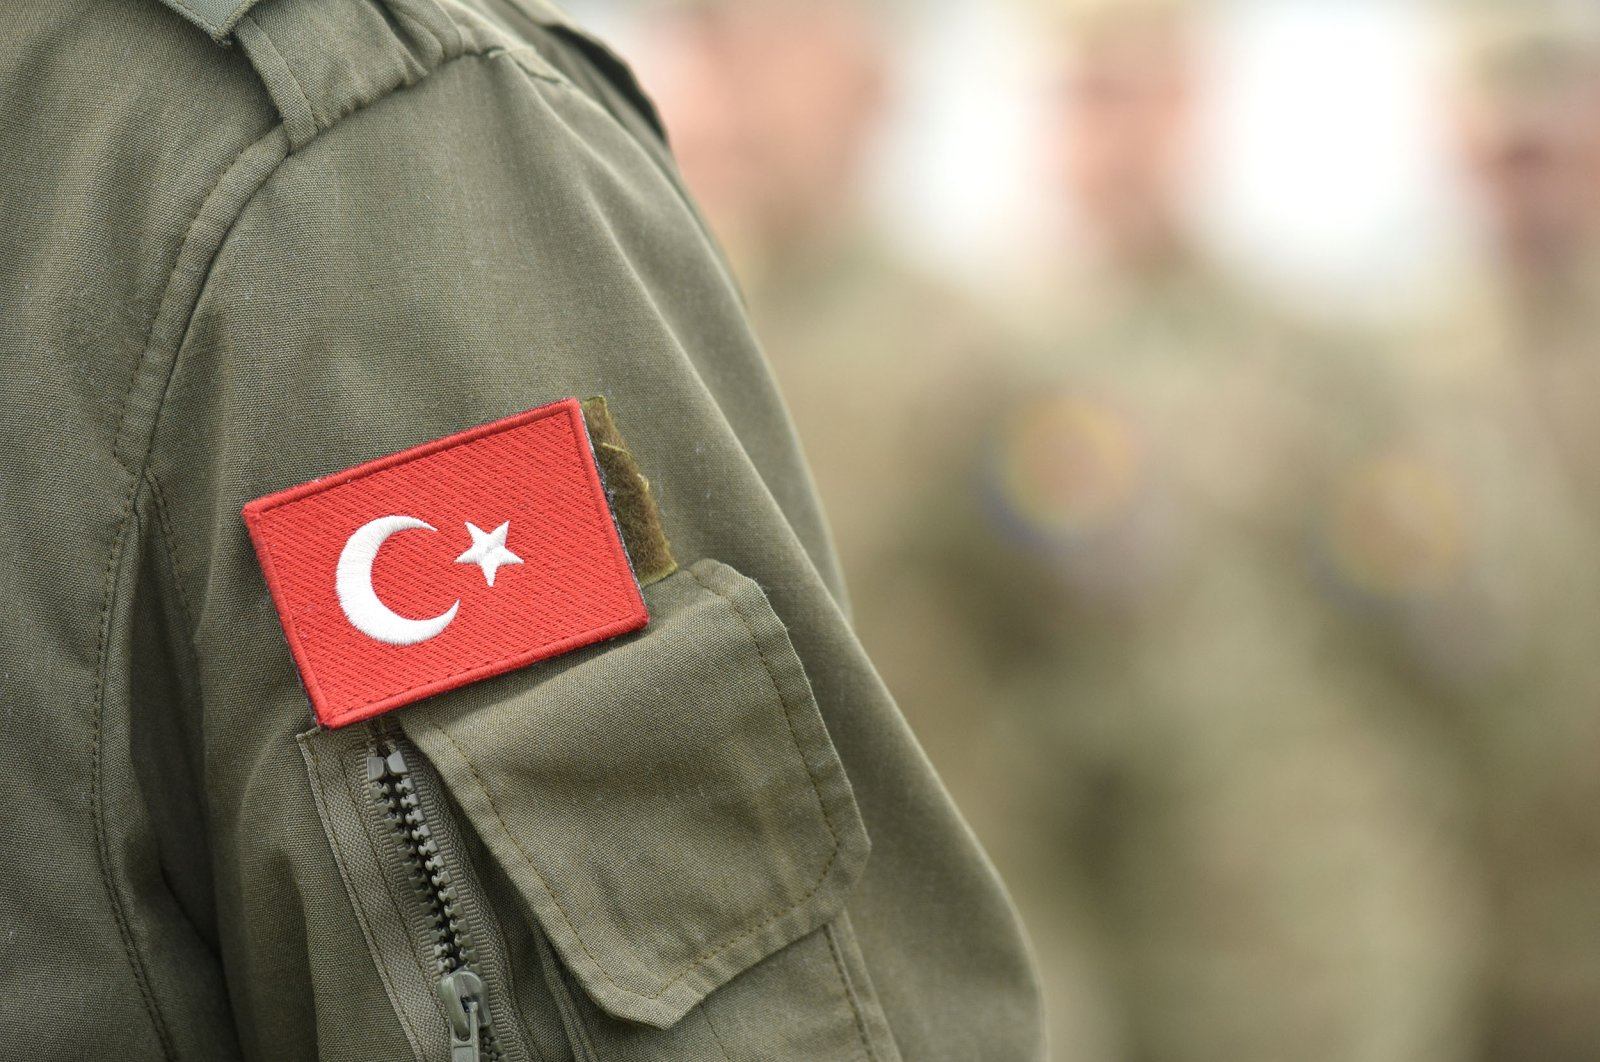 The Turkish flag is seen on the uniform of a Turkish army soldier. (Shutterstock Photo)